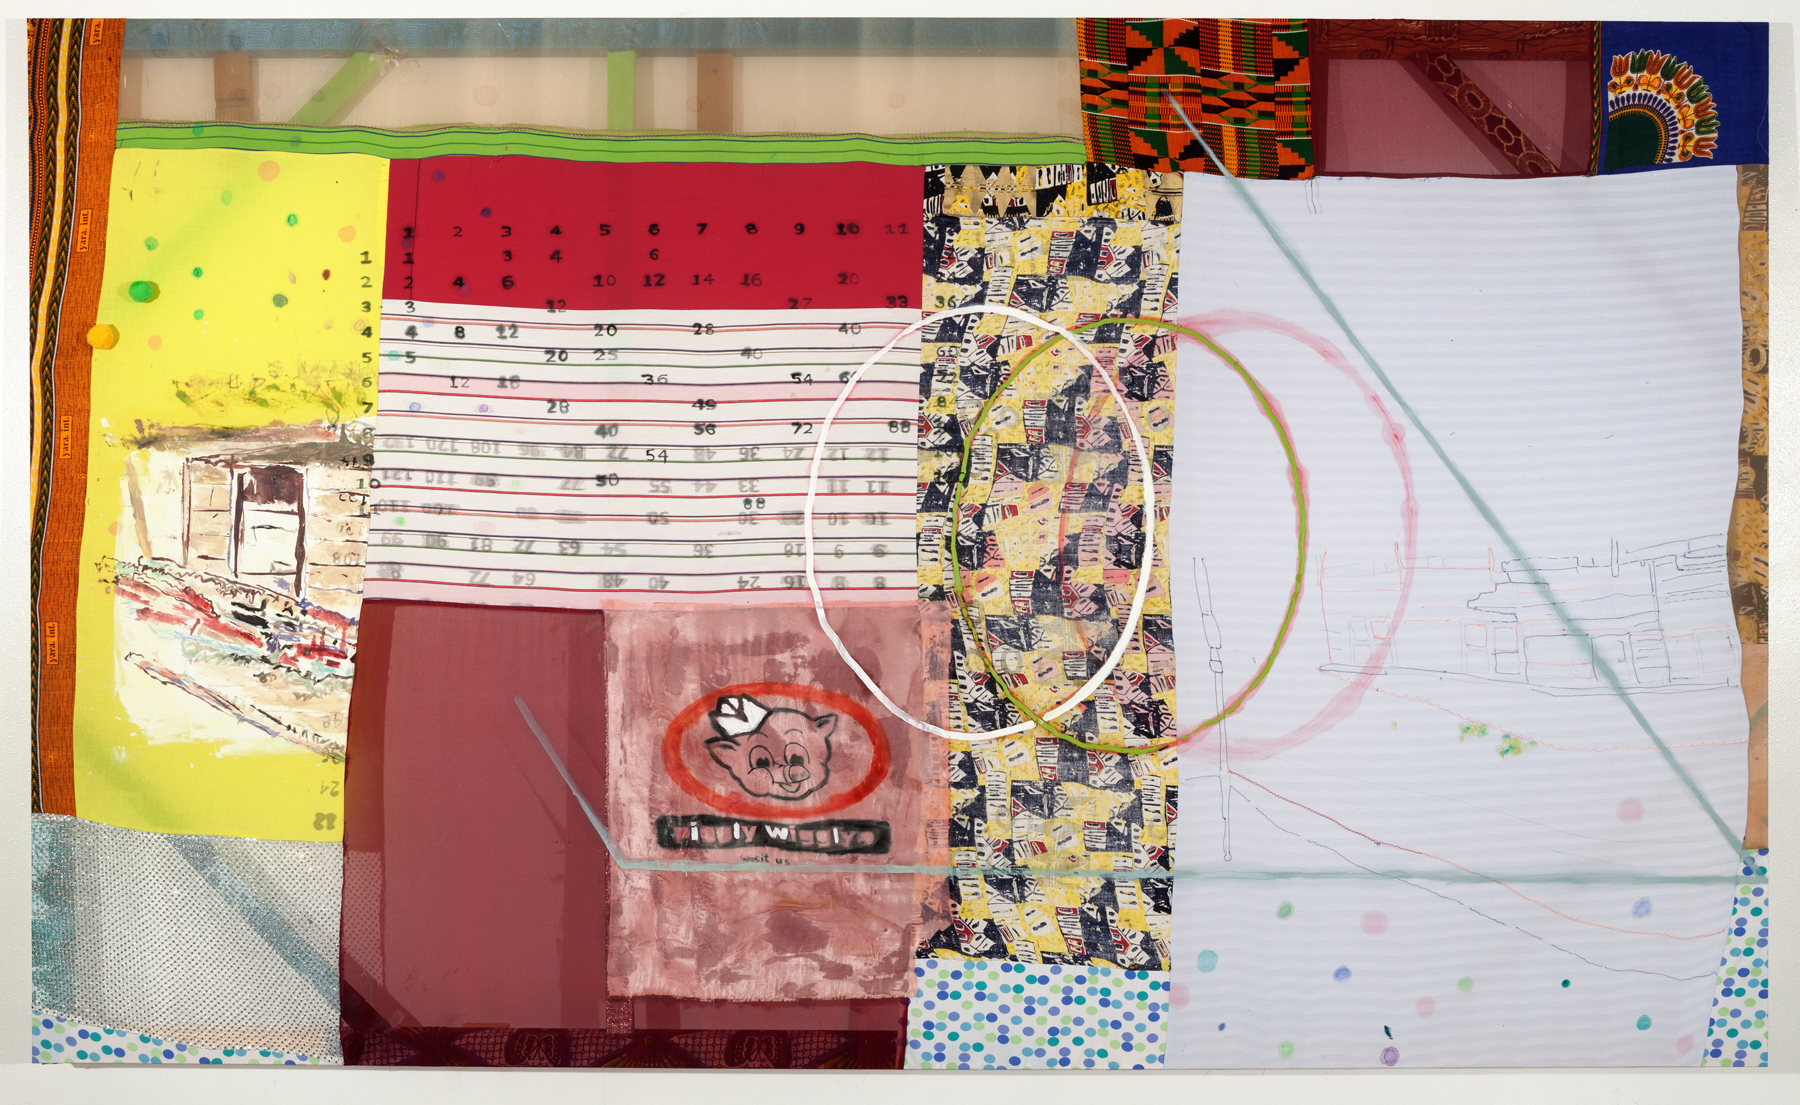 Tameka Norris   12 Times Table , 2014 acrylic and oil on fabric 60 x 100 inches 152.4 x 254 cm